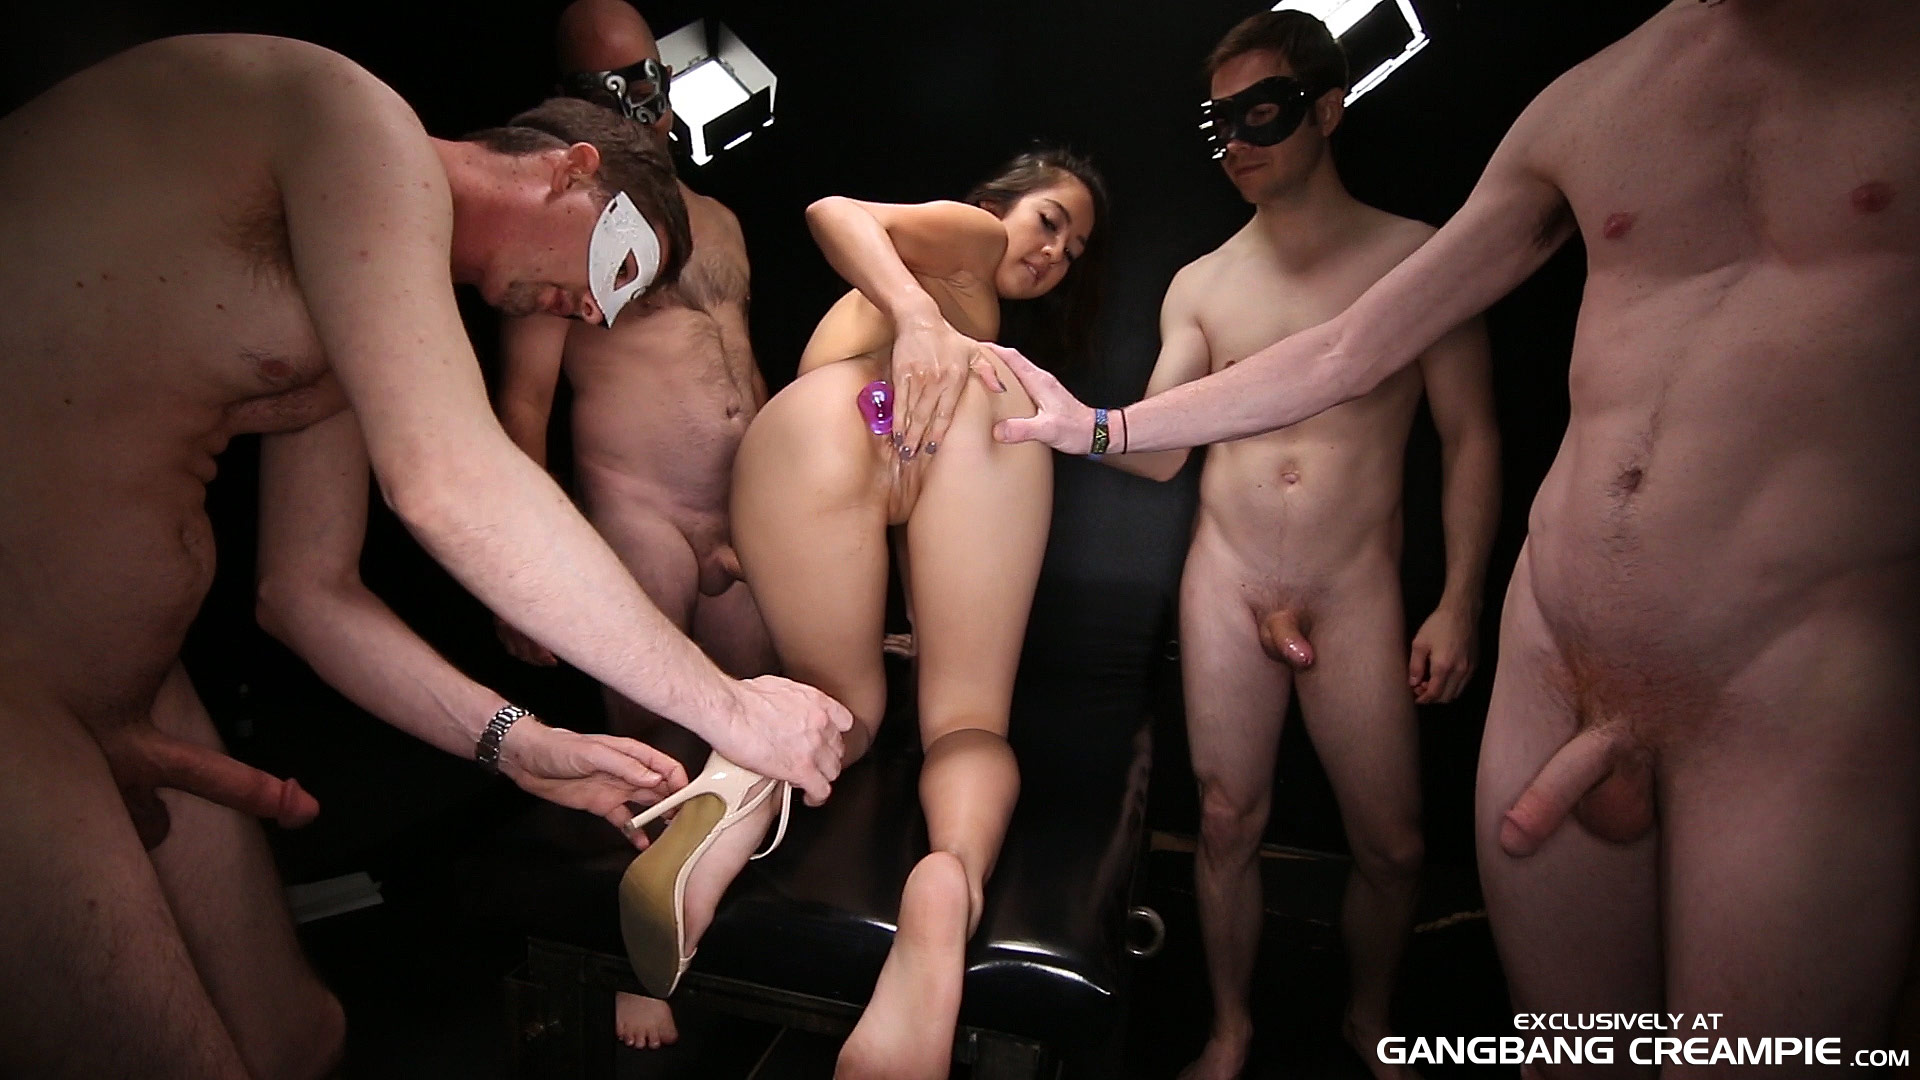 Big Tits Ass Mouth Gangbang